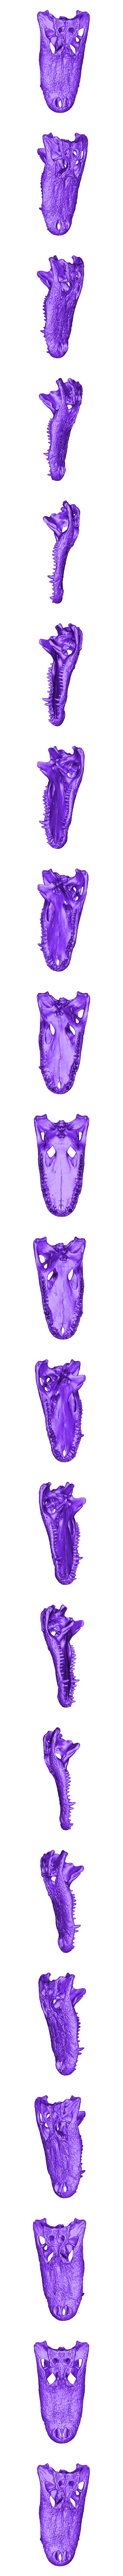 hc-2-repaired.stl Download free STL file Crocodile Skull • 3D printer template, LordLilapause